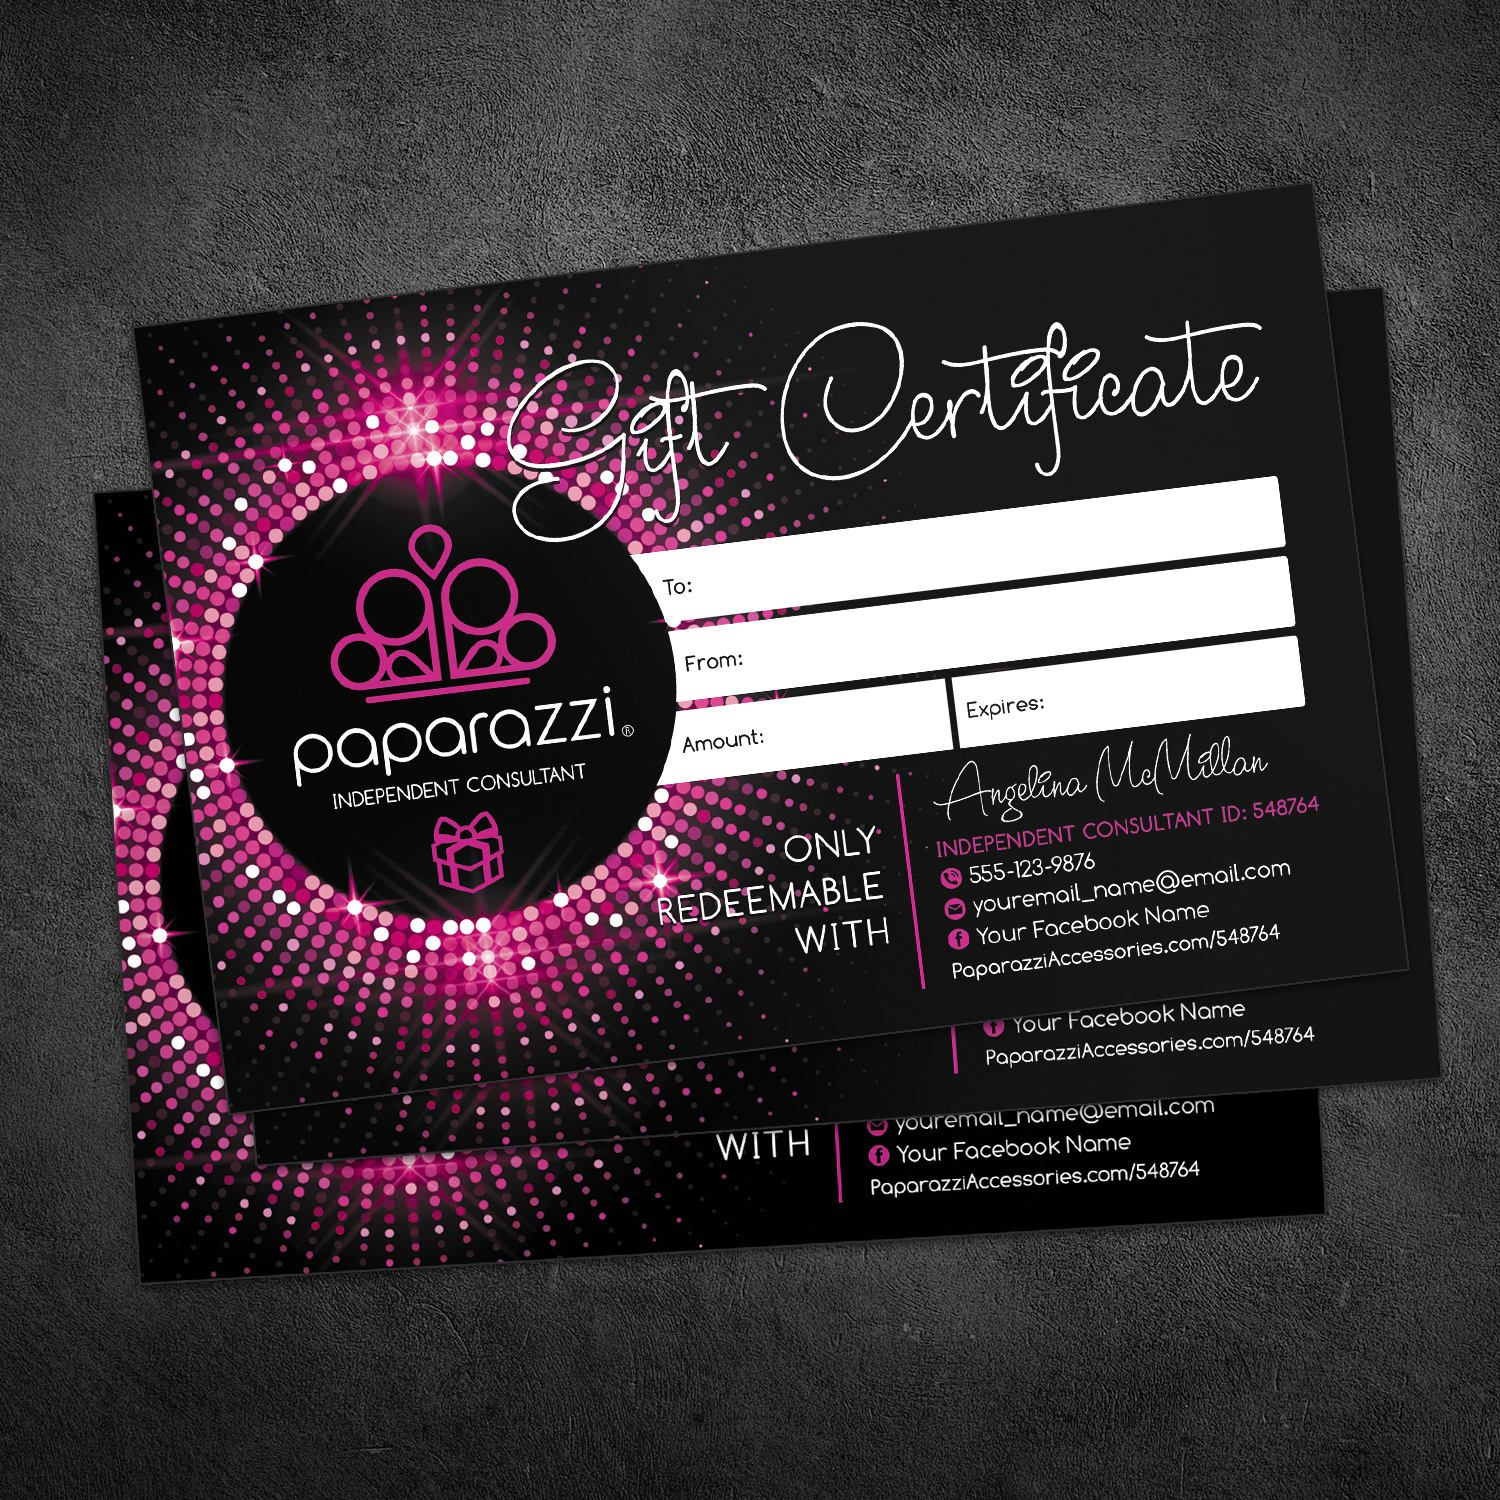 Paparazzi Gift Card Paparazzi Gift Certificate Card 4x6 Paparazzi Jewelry Accessories Pa Paparazzi Gifts Free Business Card Templates Jewelry Business Card